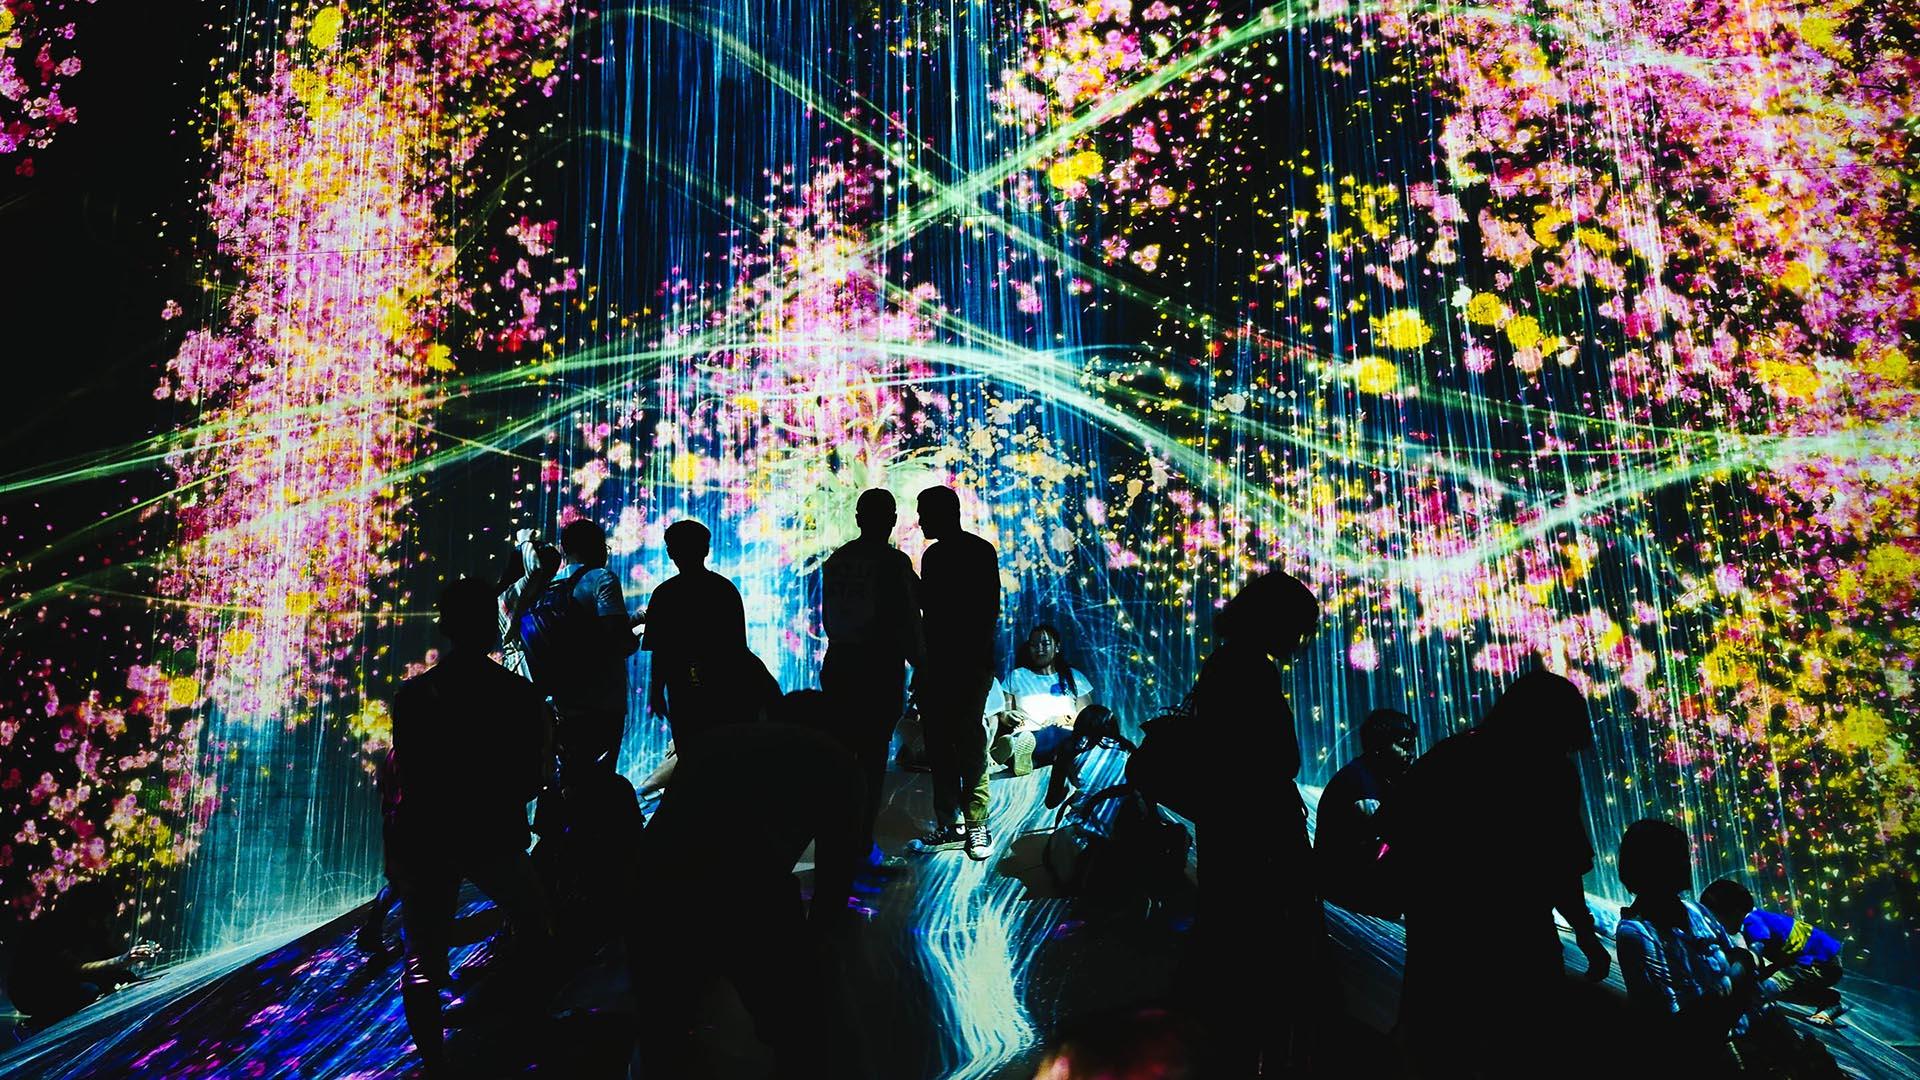 People  at a museum walking in front of a projection of a waterfall and neon colours